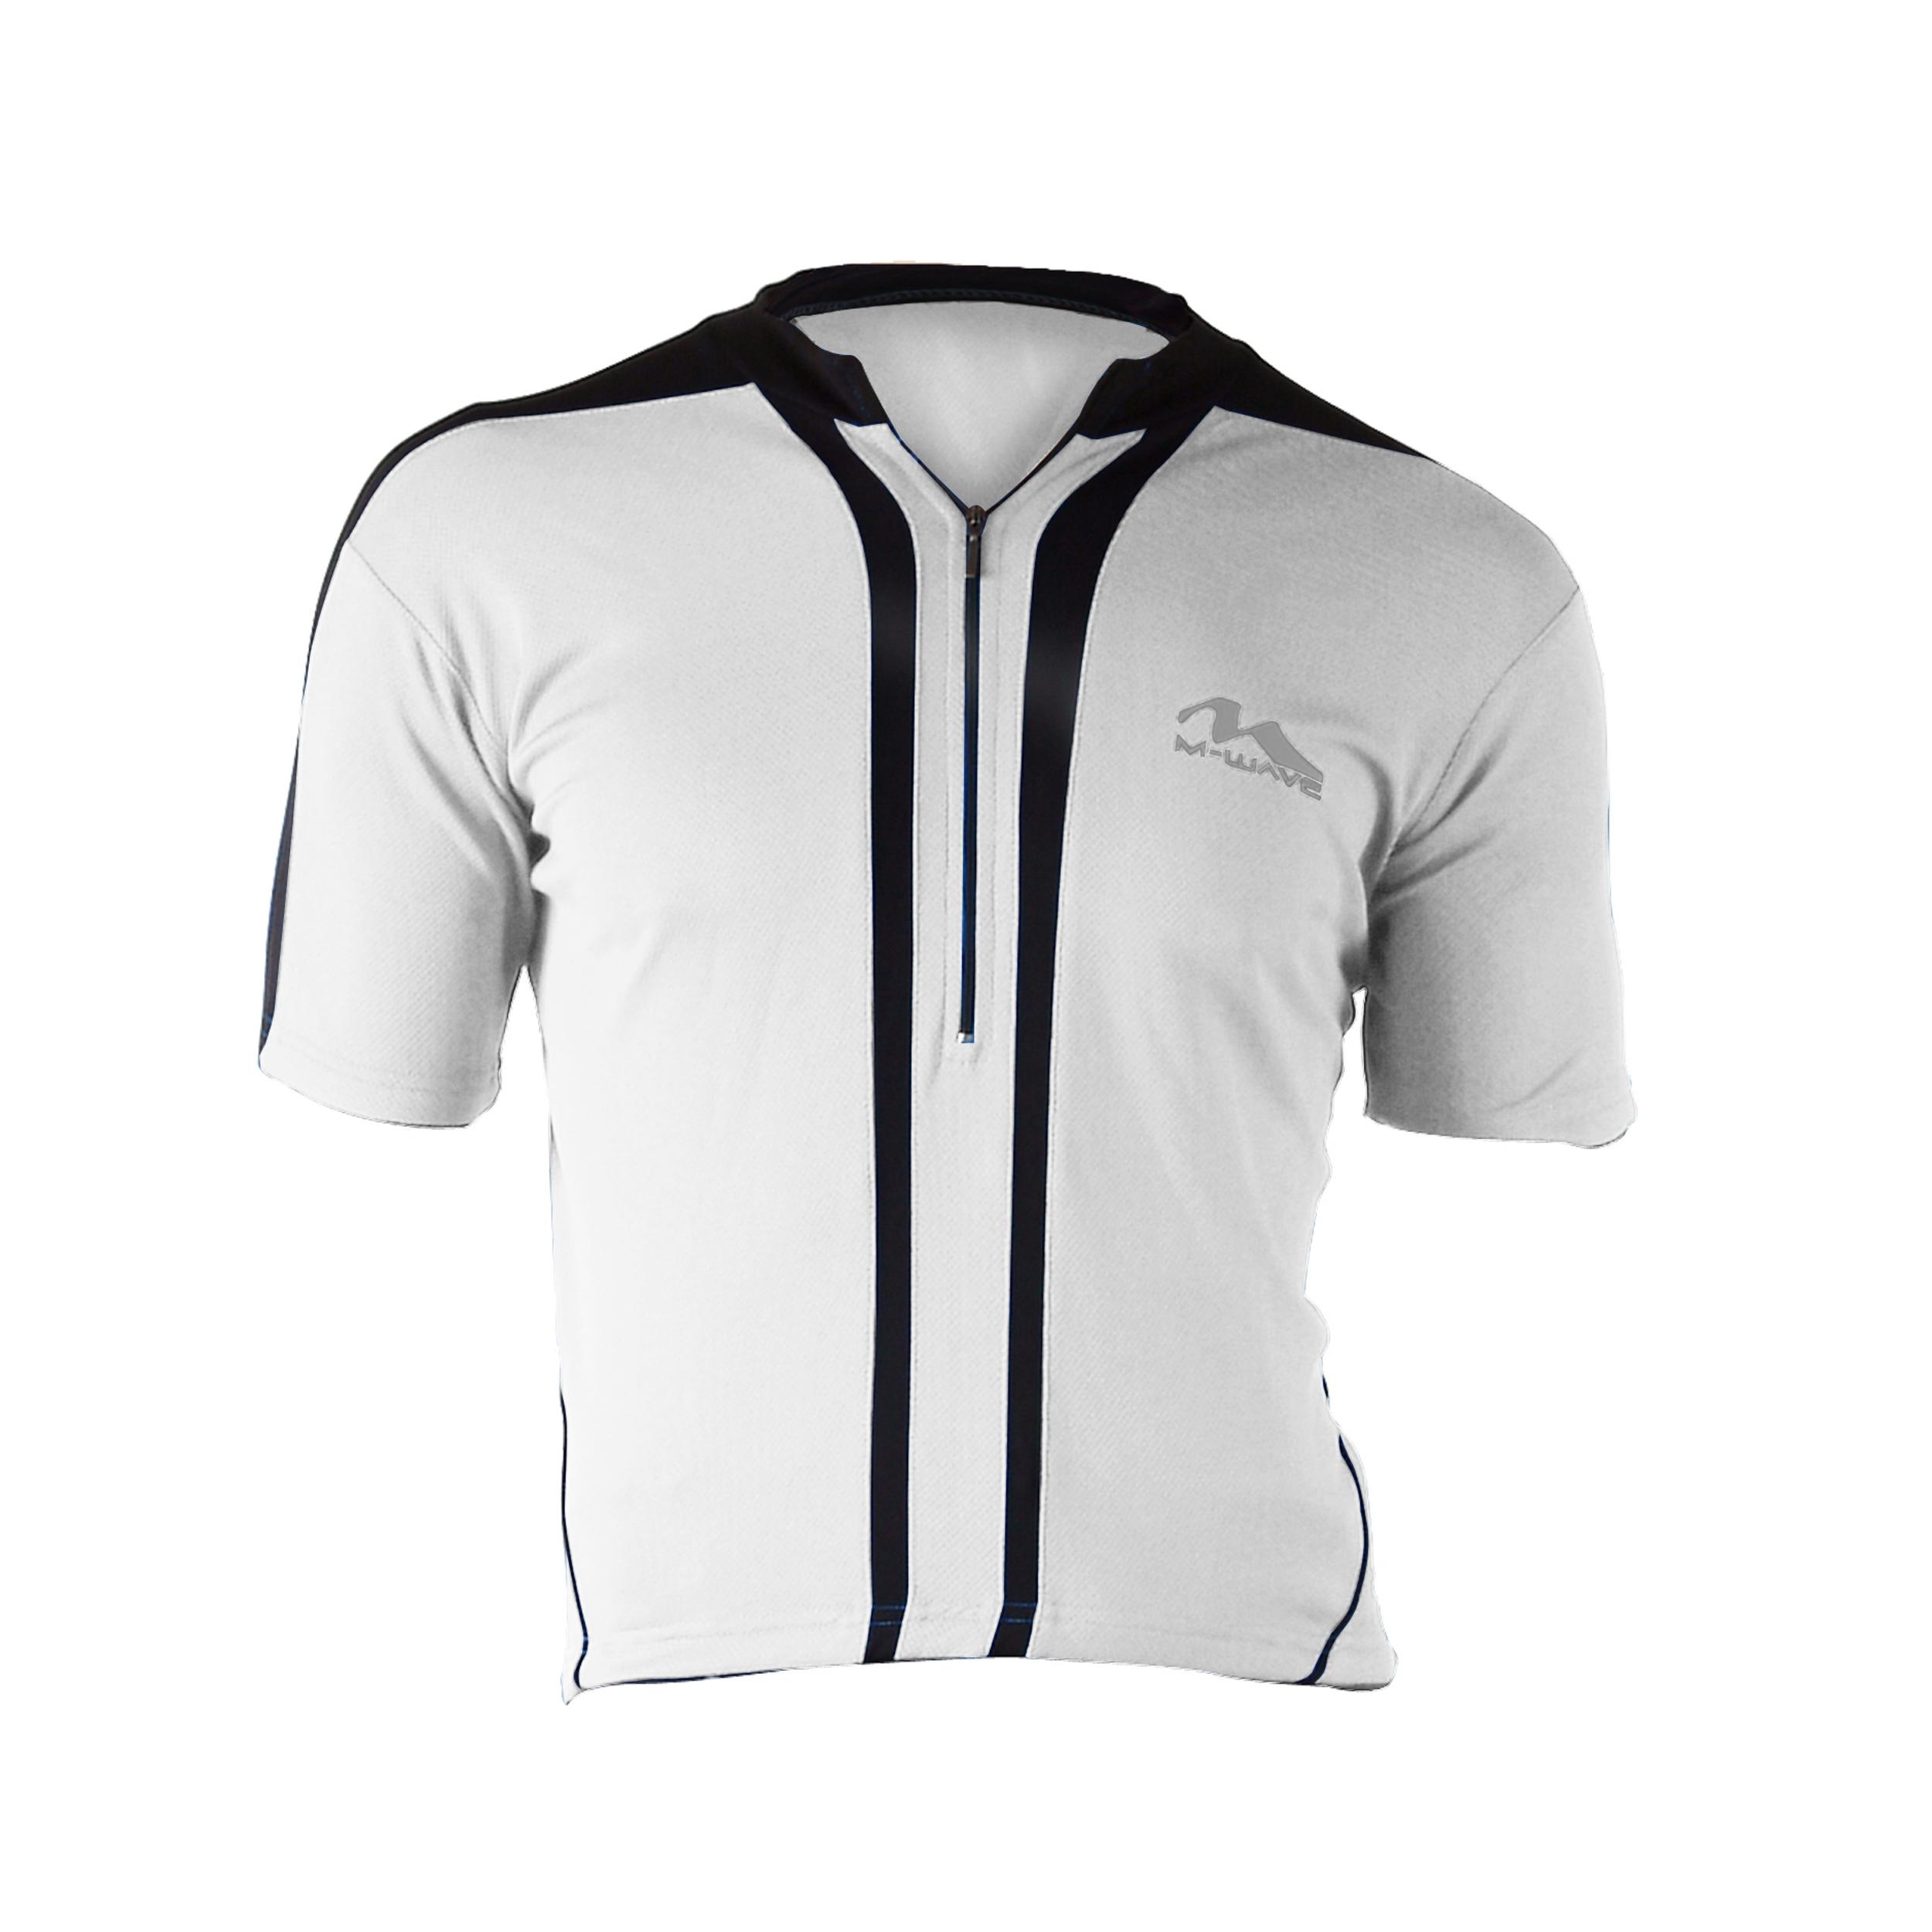 Cycle Force Men's M-Wave White Bicycle Jersey-Large